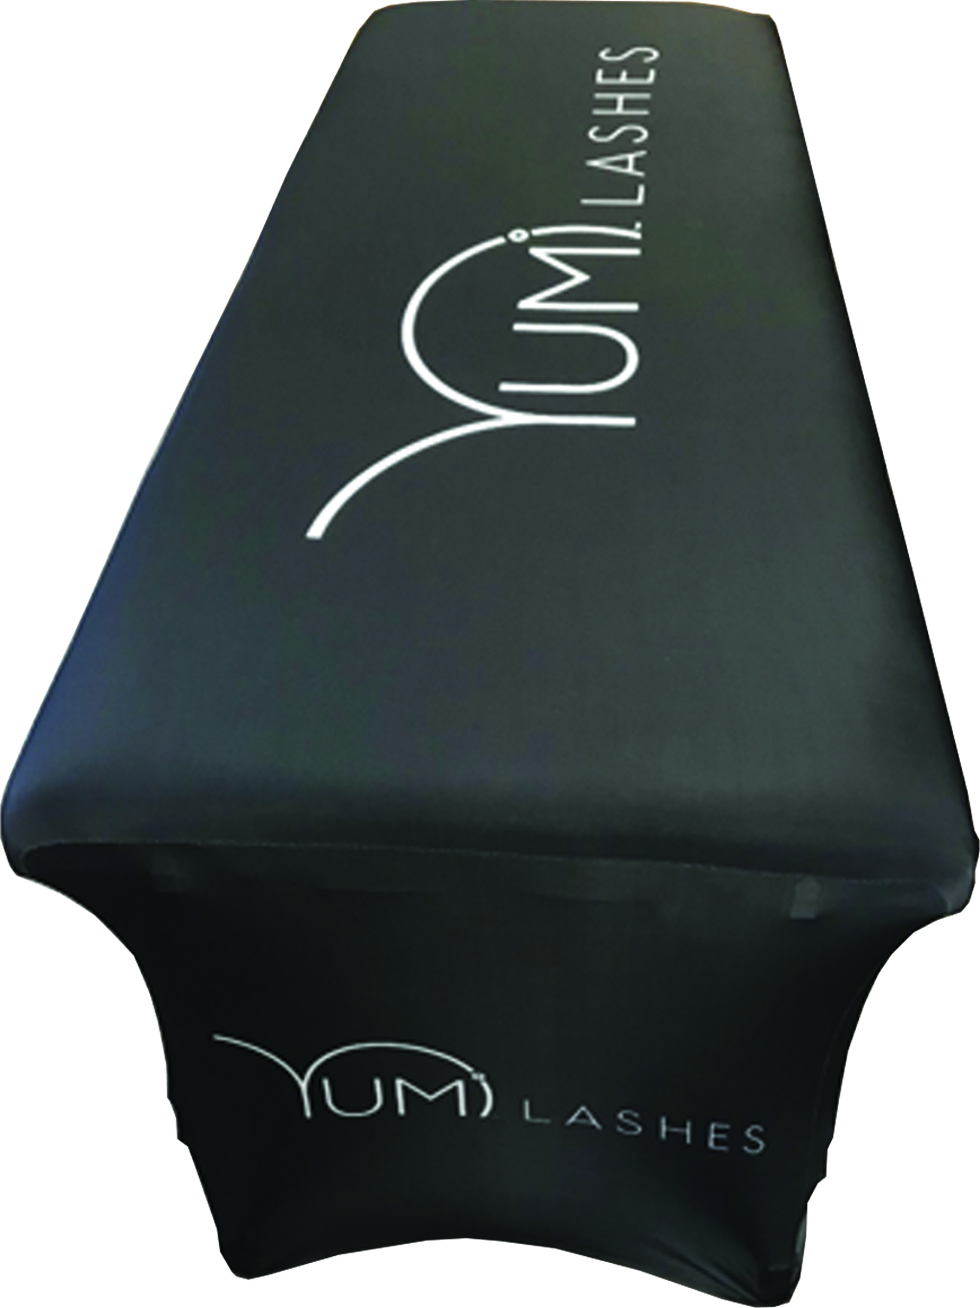 Yumi Lashes Bed cover